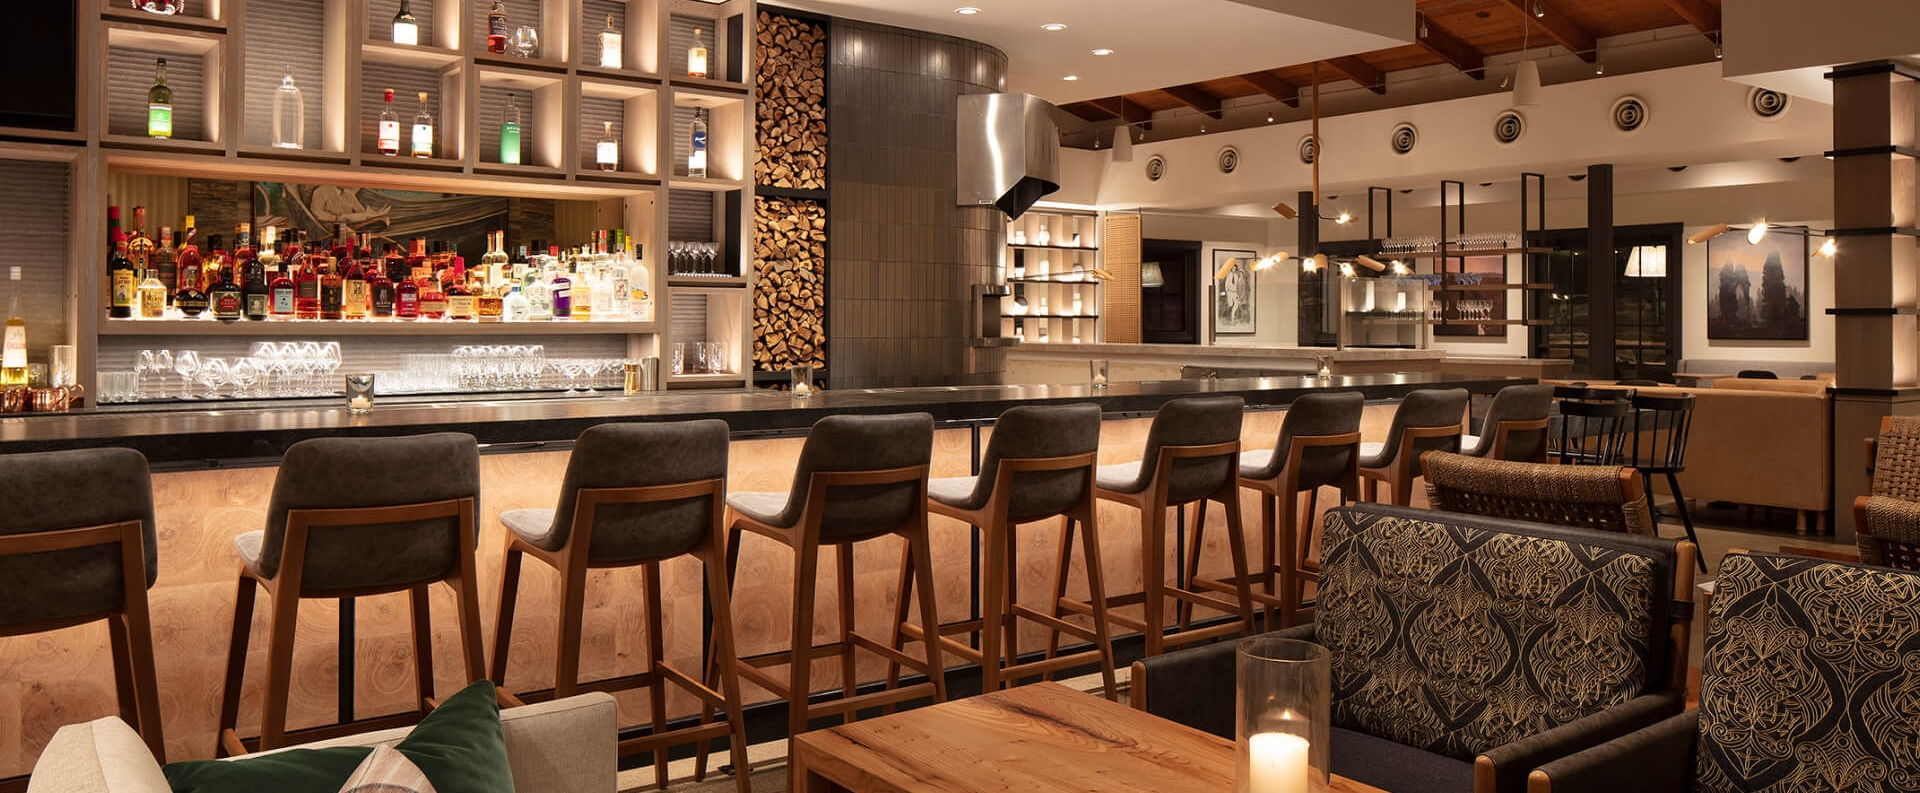 A row of chairs line the bar at The Lodge at Sonoma, Wit & Wisdom.